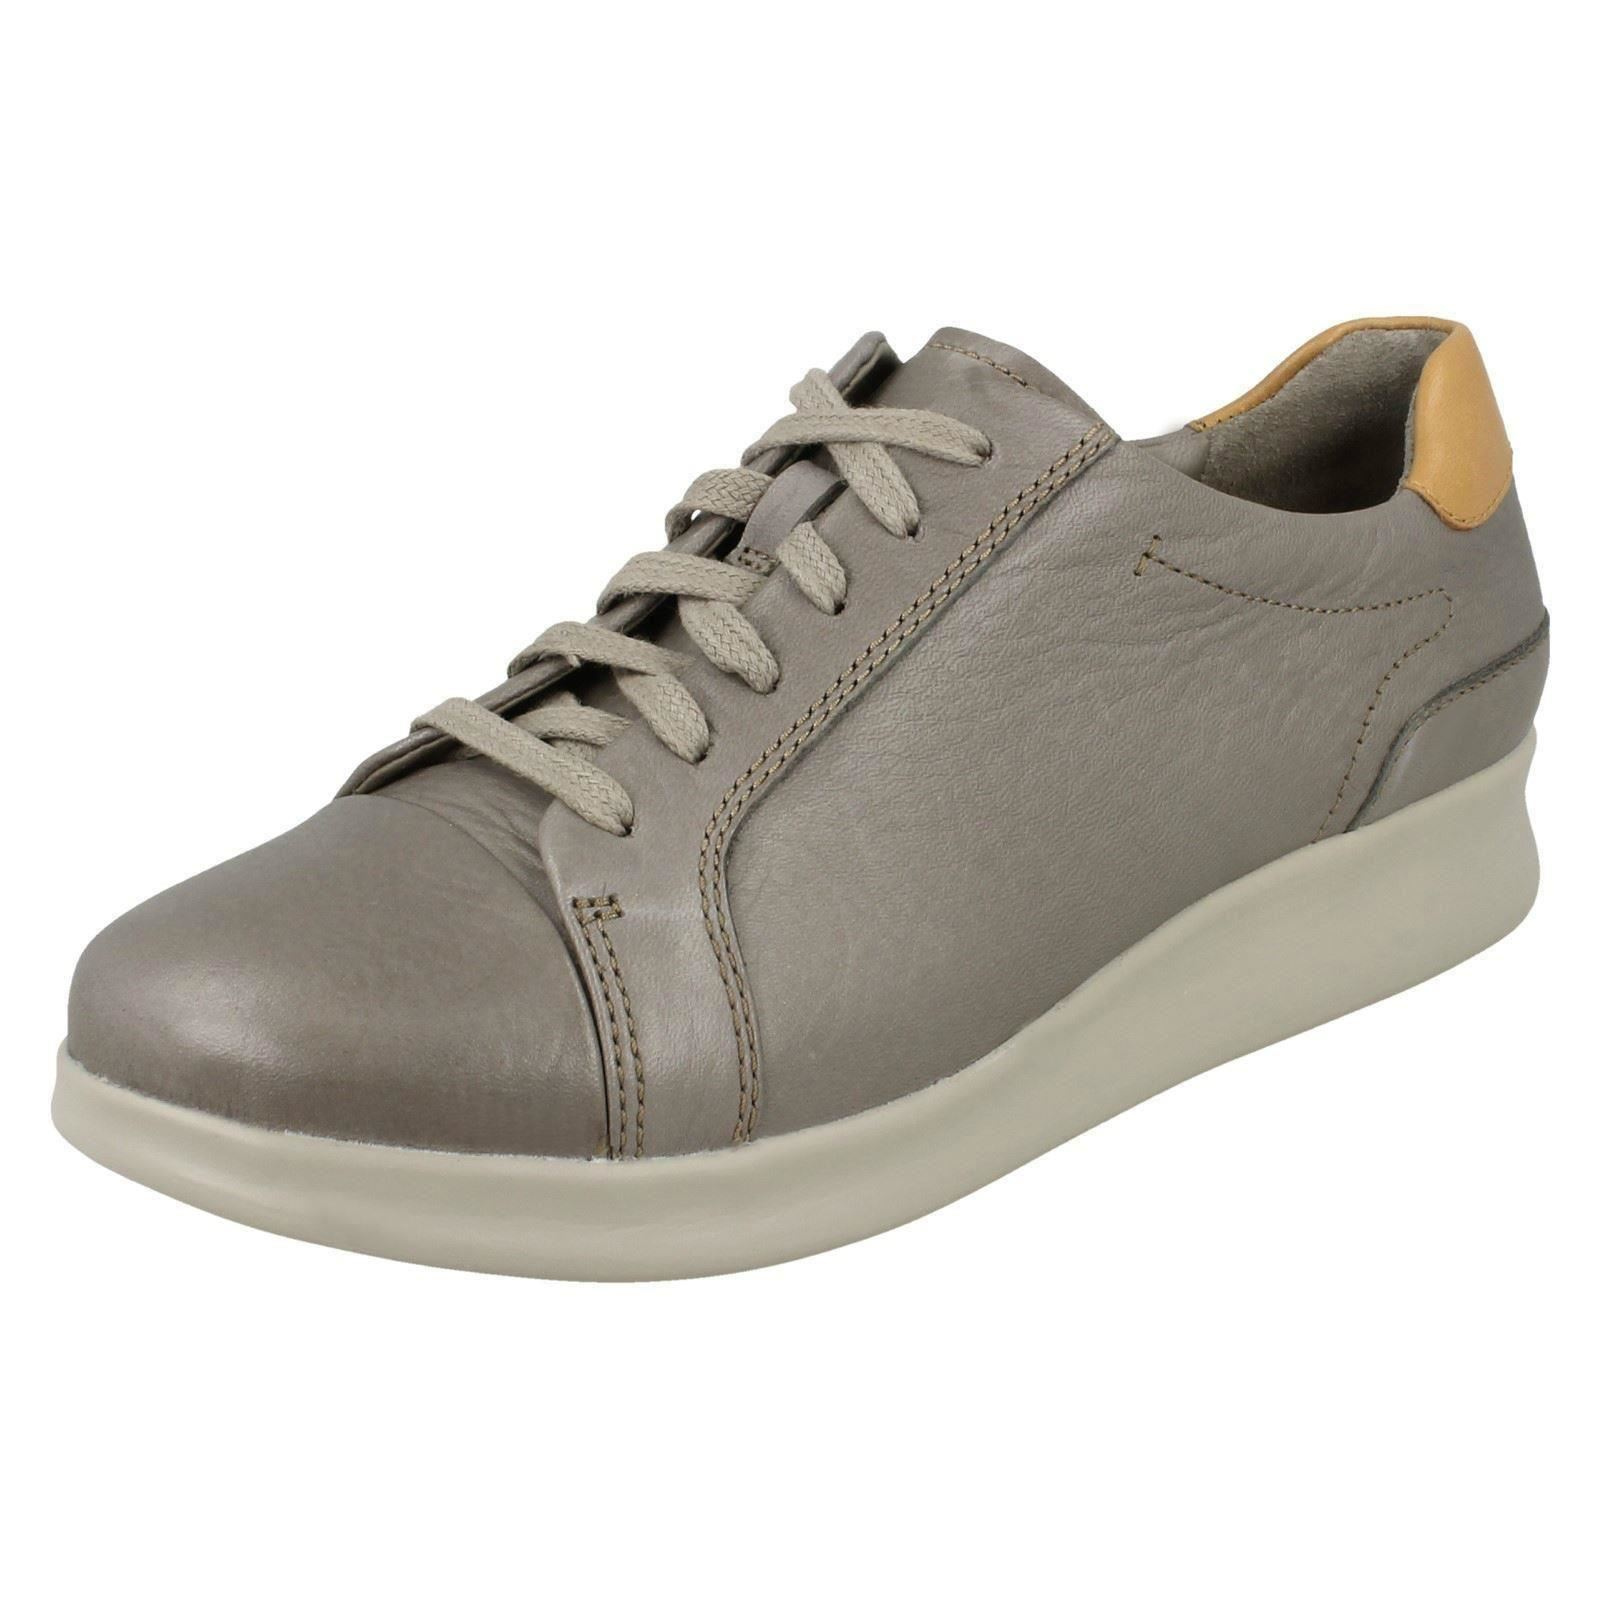 Clarks Ladies Casual Shoes